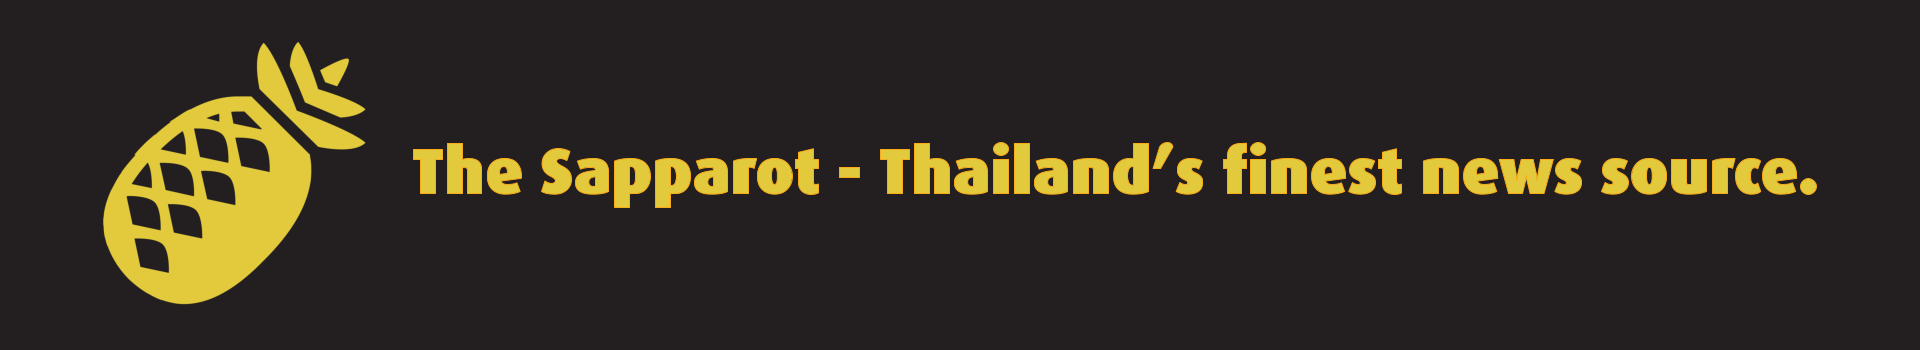 The Sapparot - Thailand's finest news source.